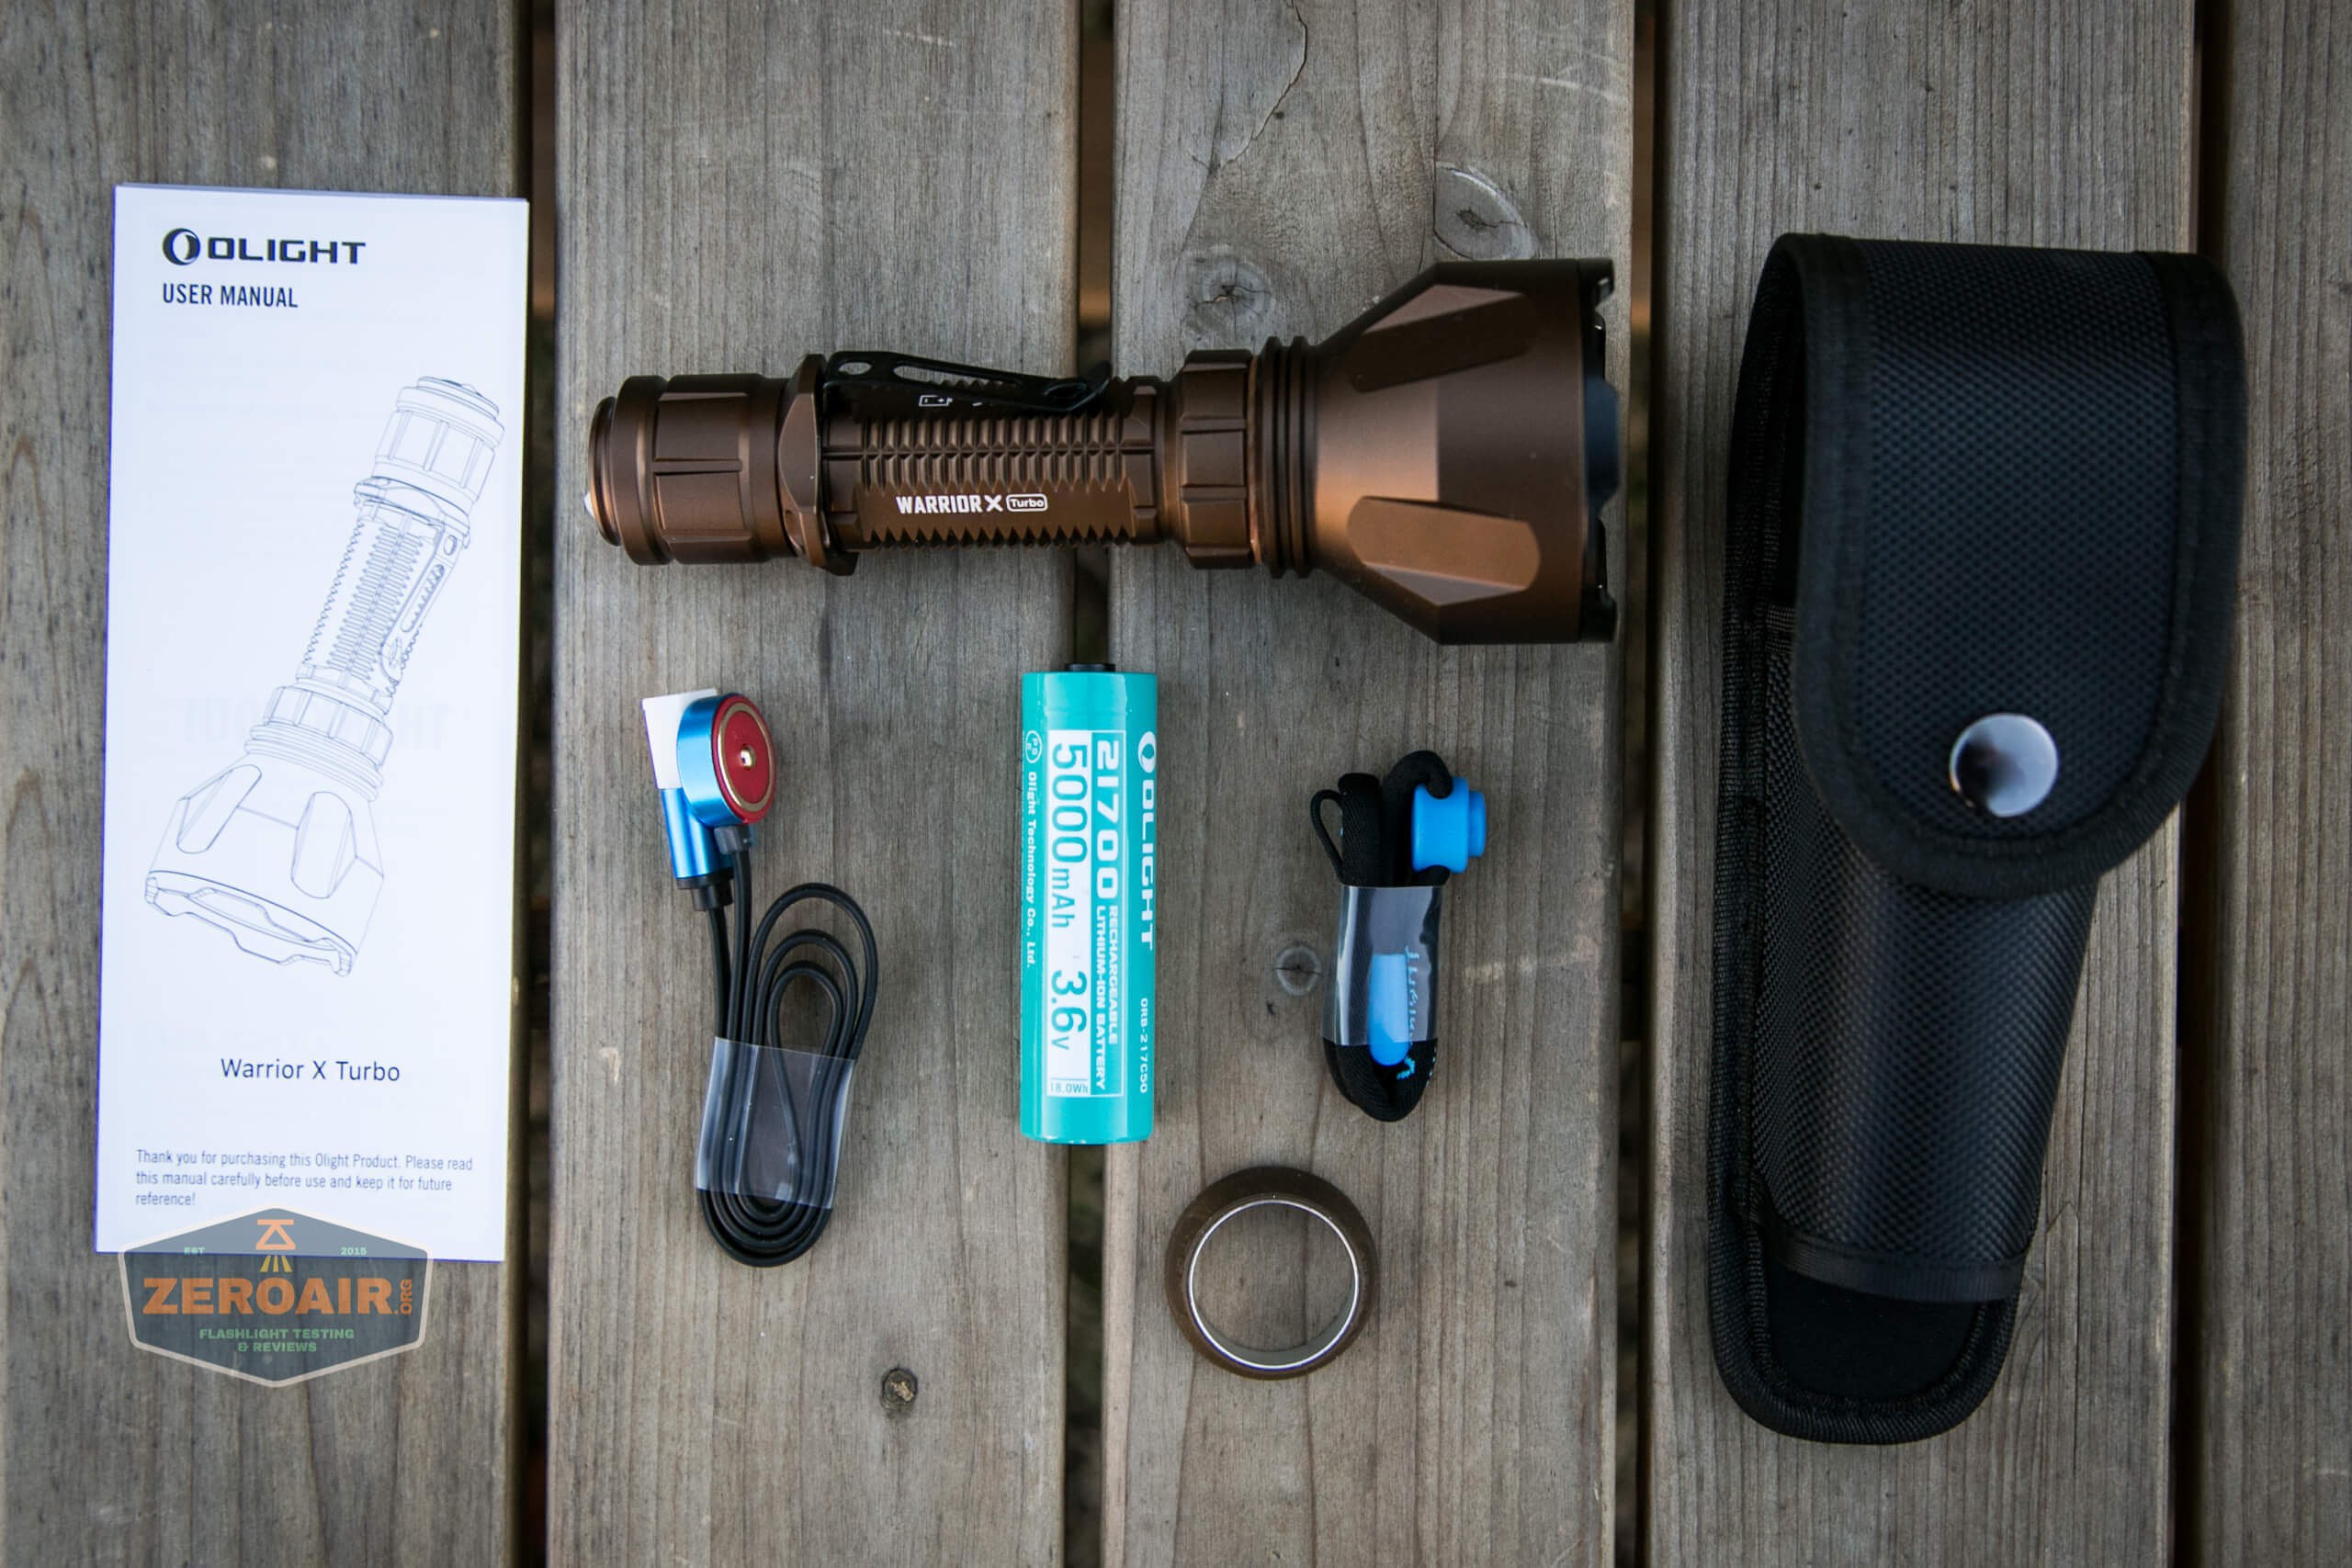 olight warrior x turbo desert tan flashlight what's included